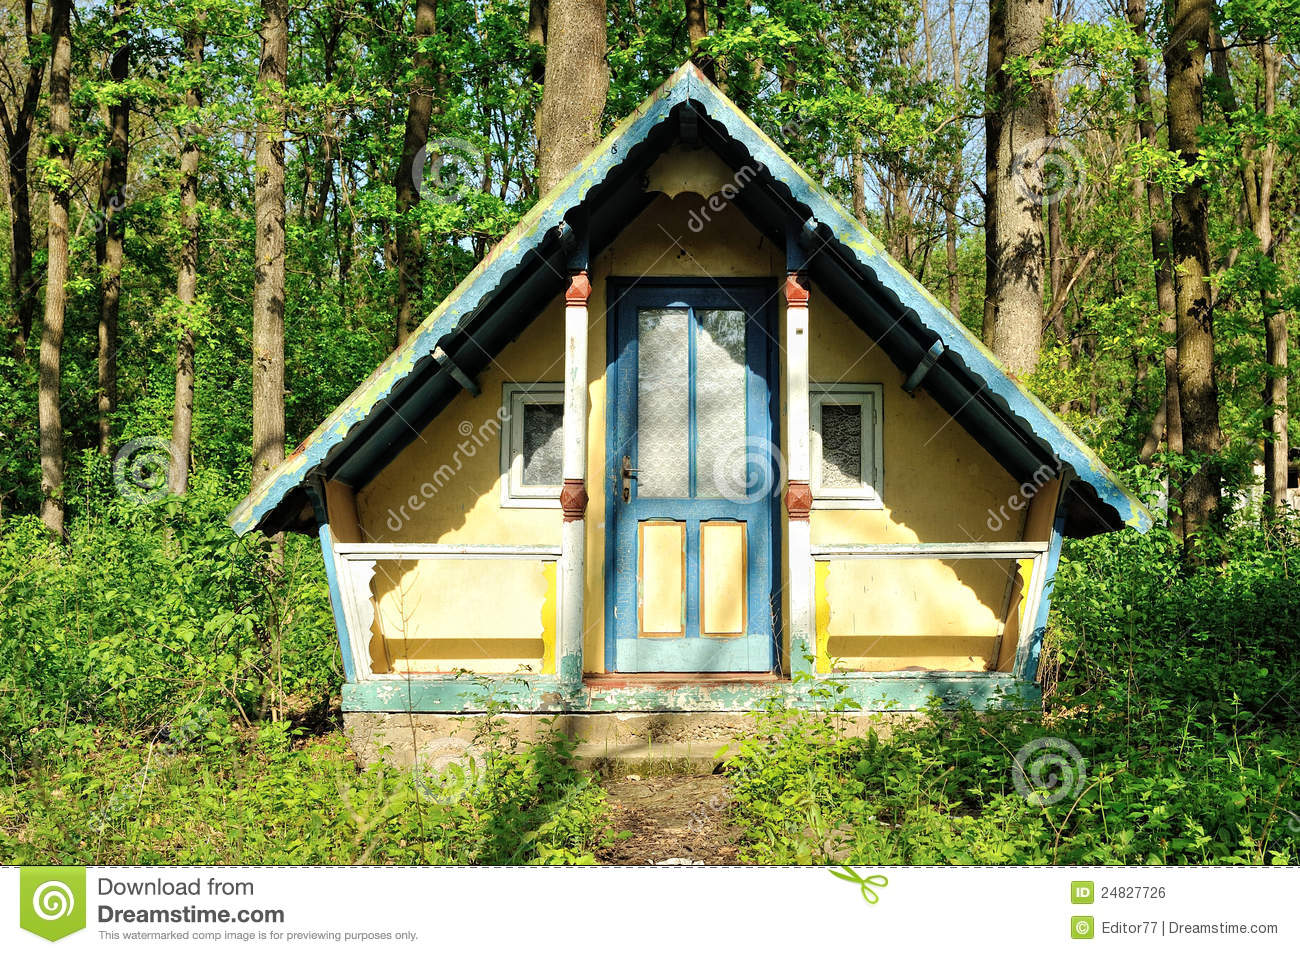 Royalty Free Stock Image Small Wooden House Abandoned Forest Image24827726 on 12 X 20 Cabin Floor Plans